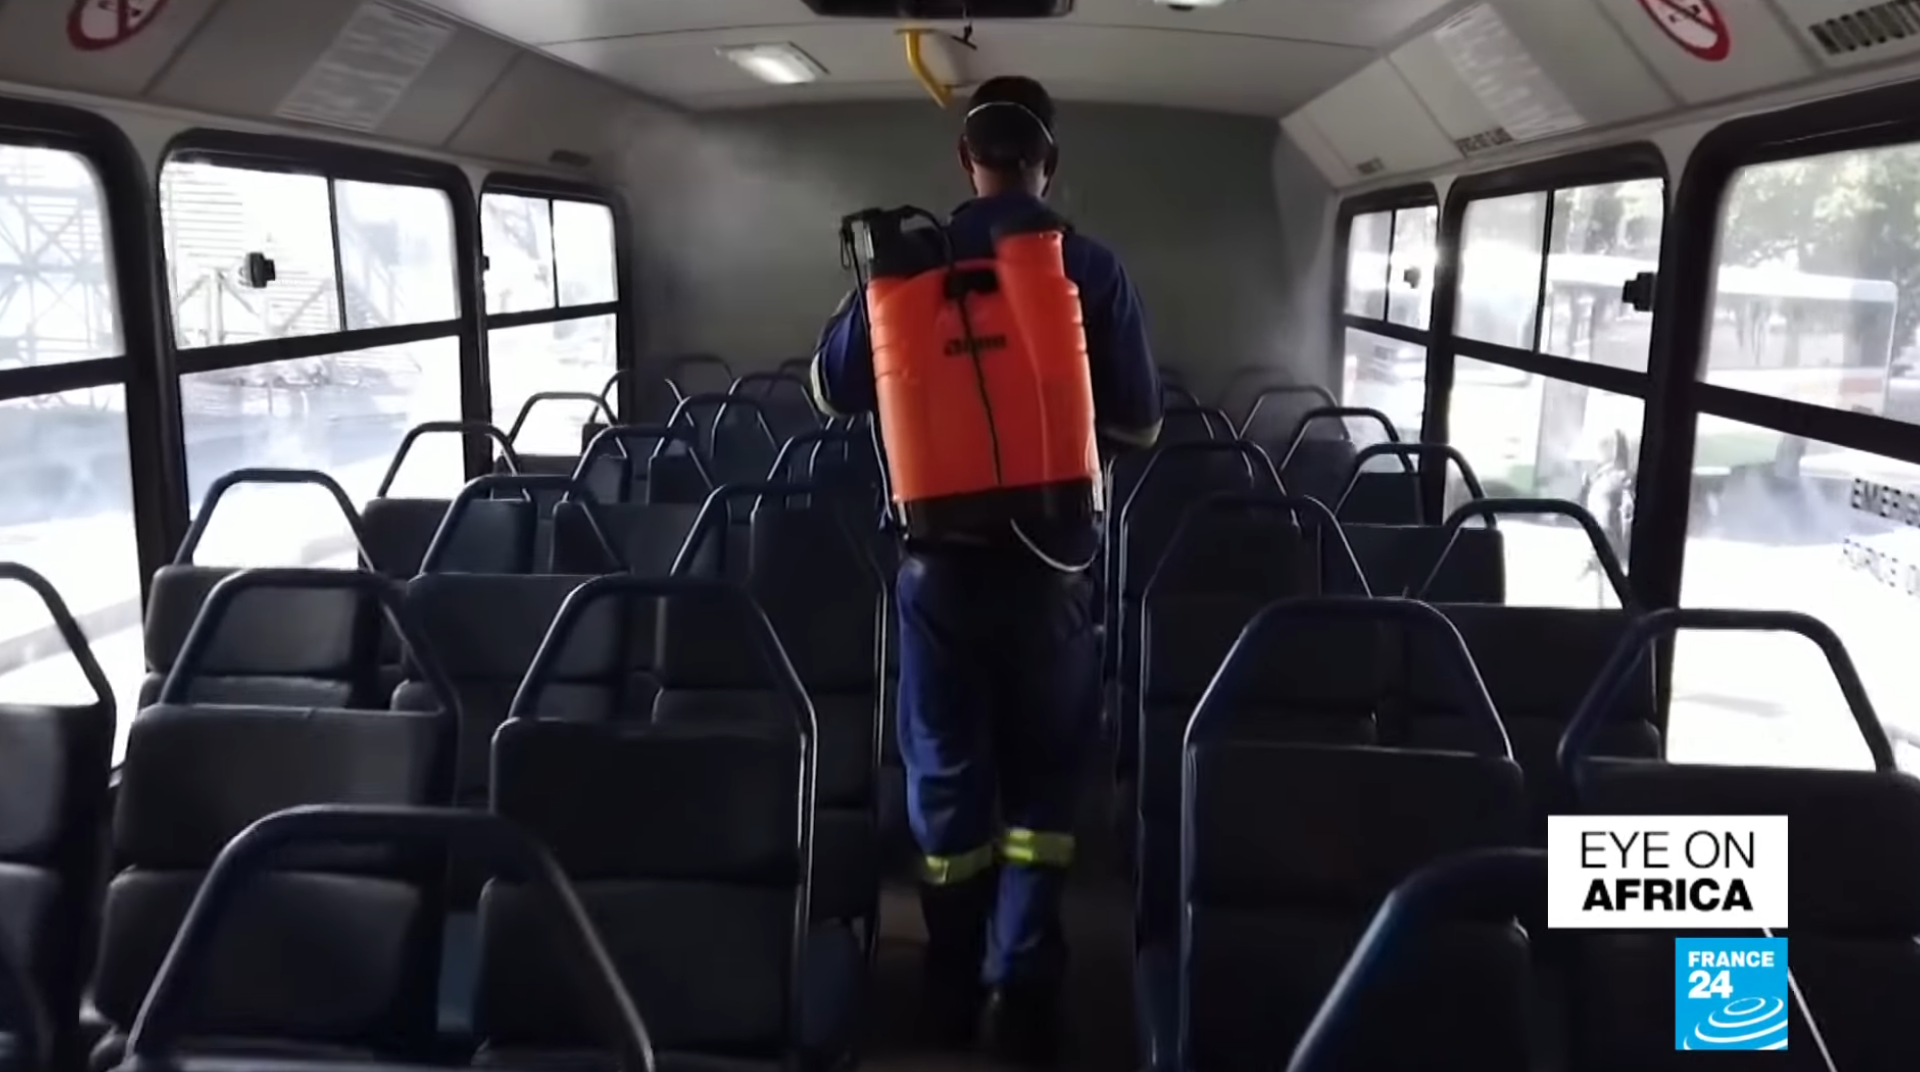 Healthworkers spray the inside of buses in South Africa, March 18 2020.